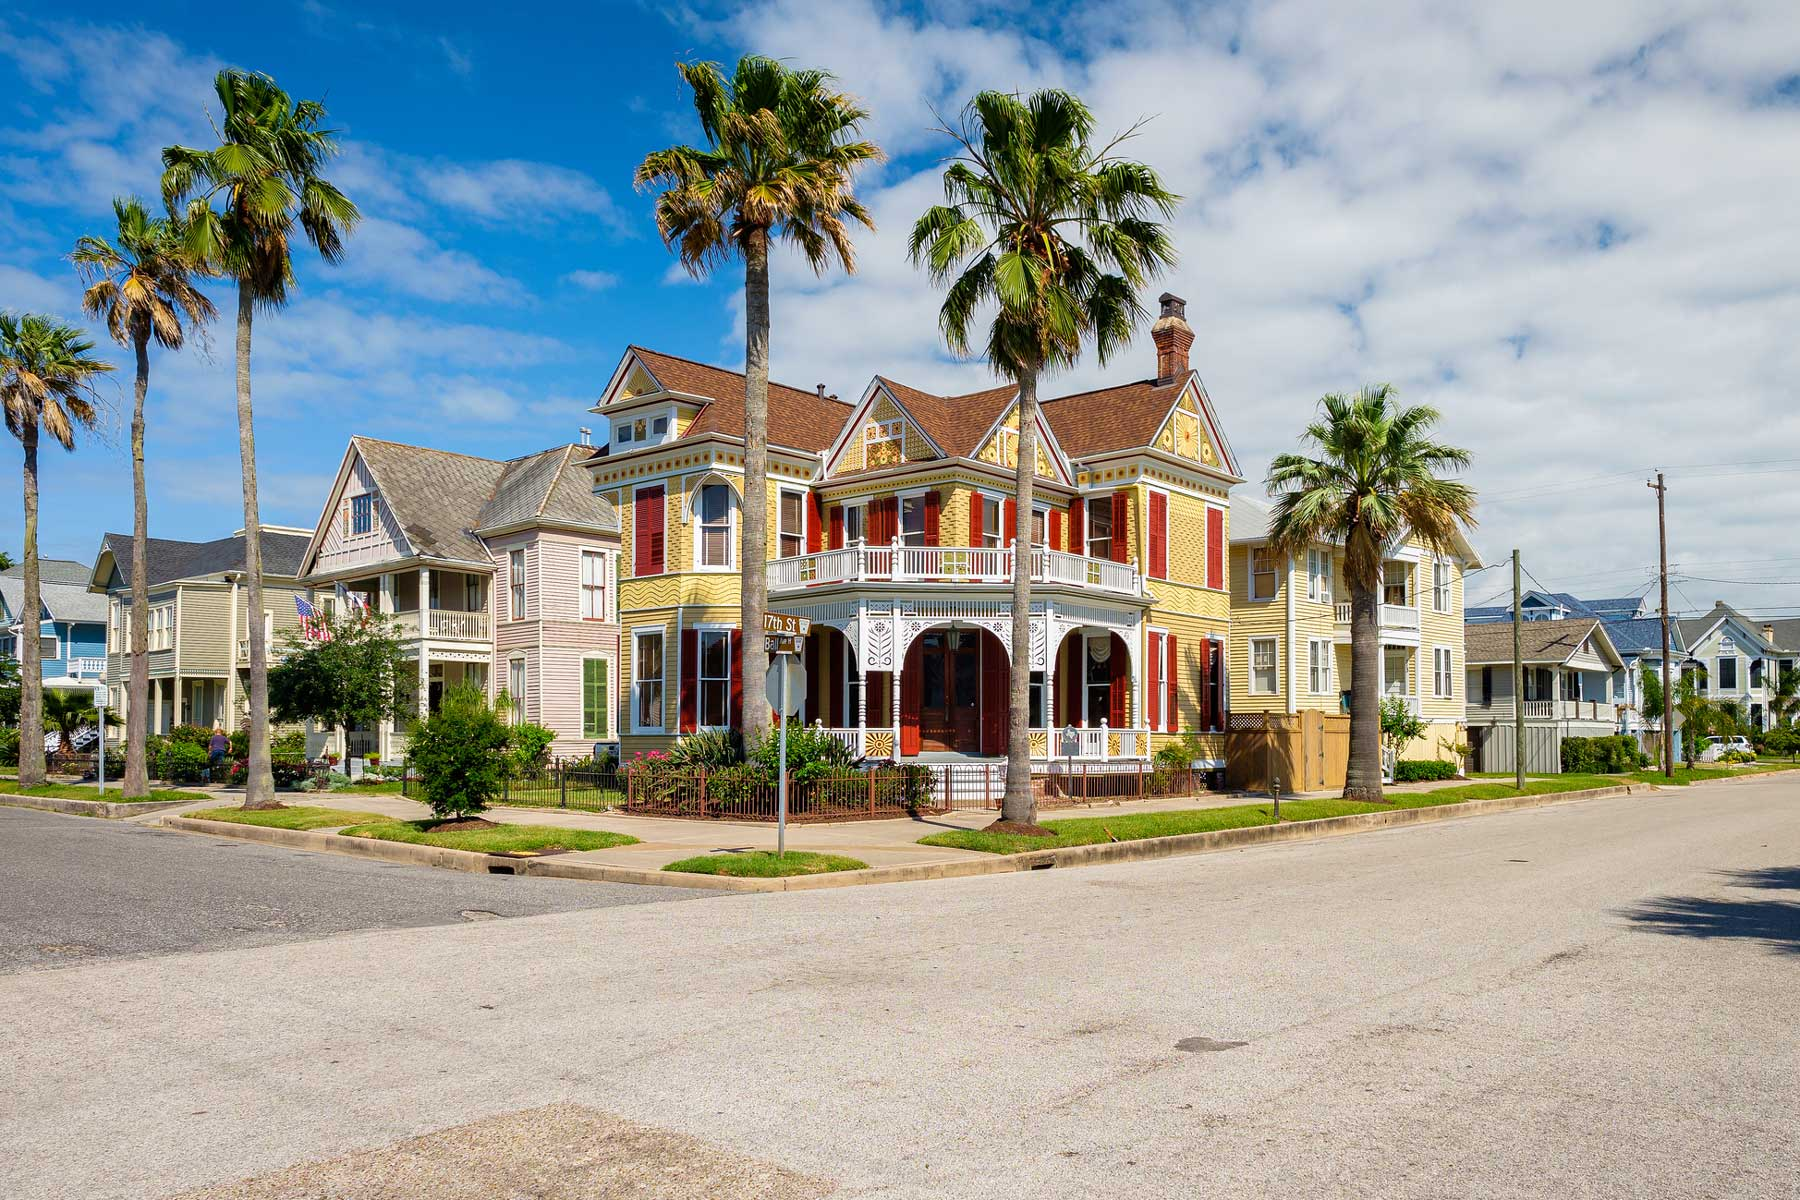 The Silk Stocking Residential Historic District contains beautifully restored vintage homes of the Queen Anne architecture style in this coastal community.